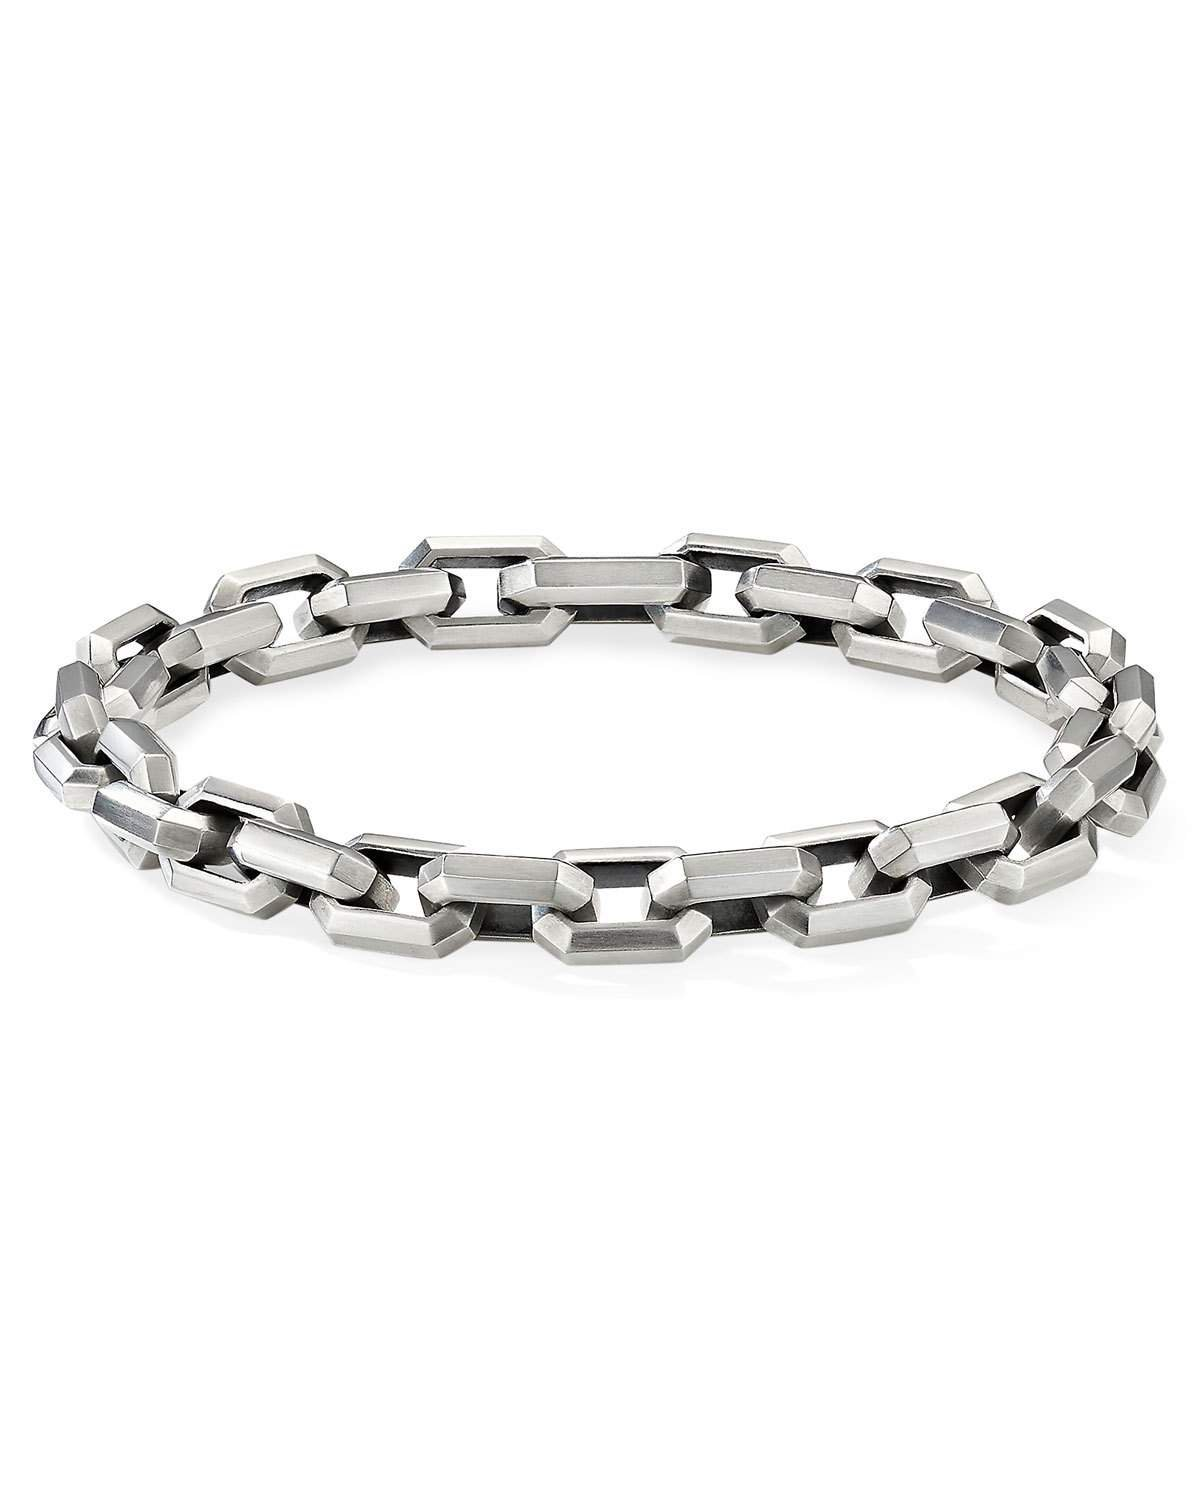 David Yurman Heirloom Link Bracelet